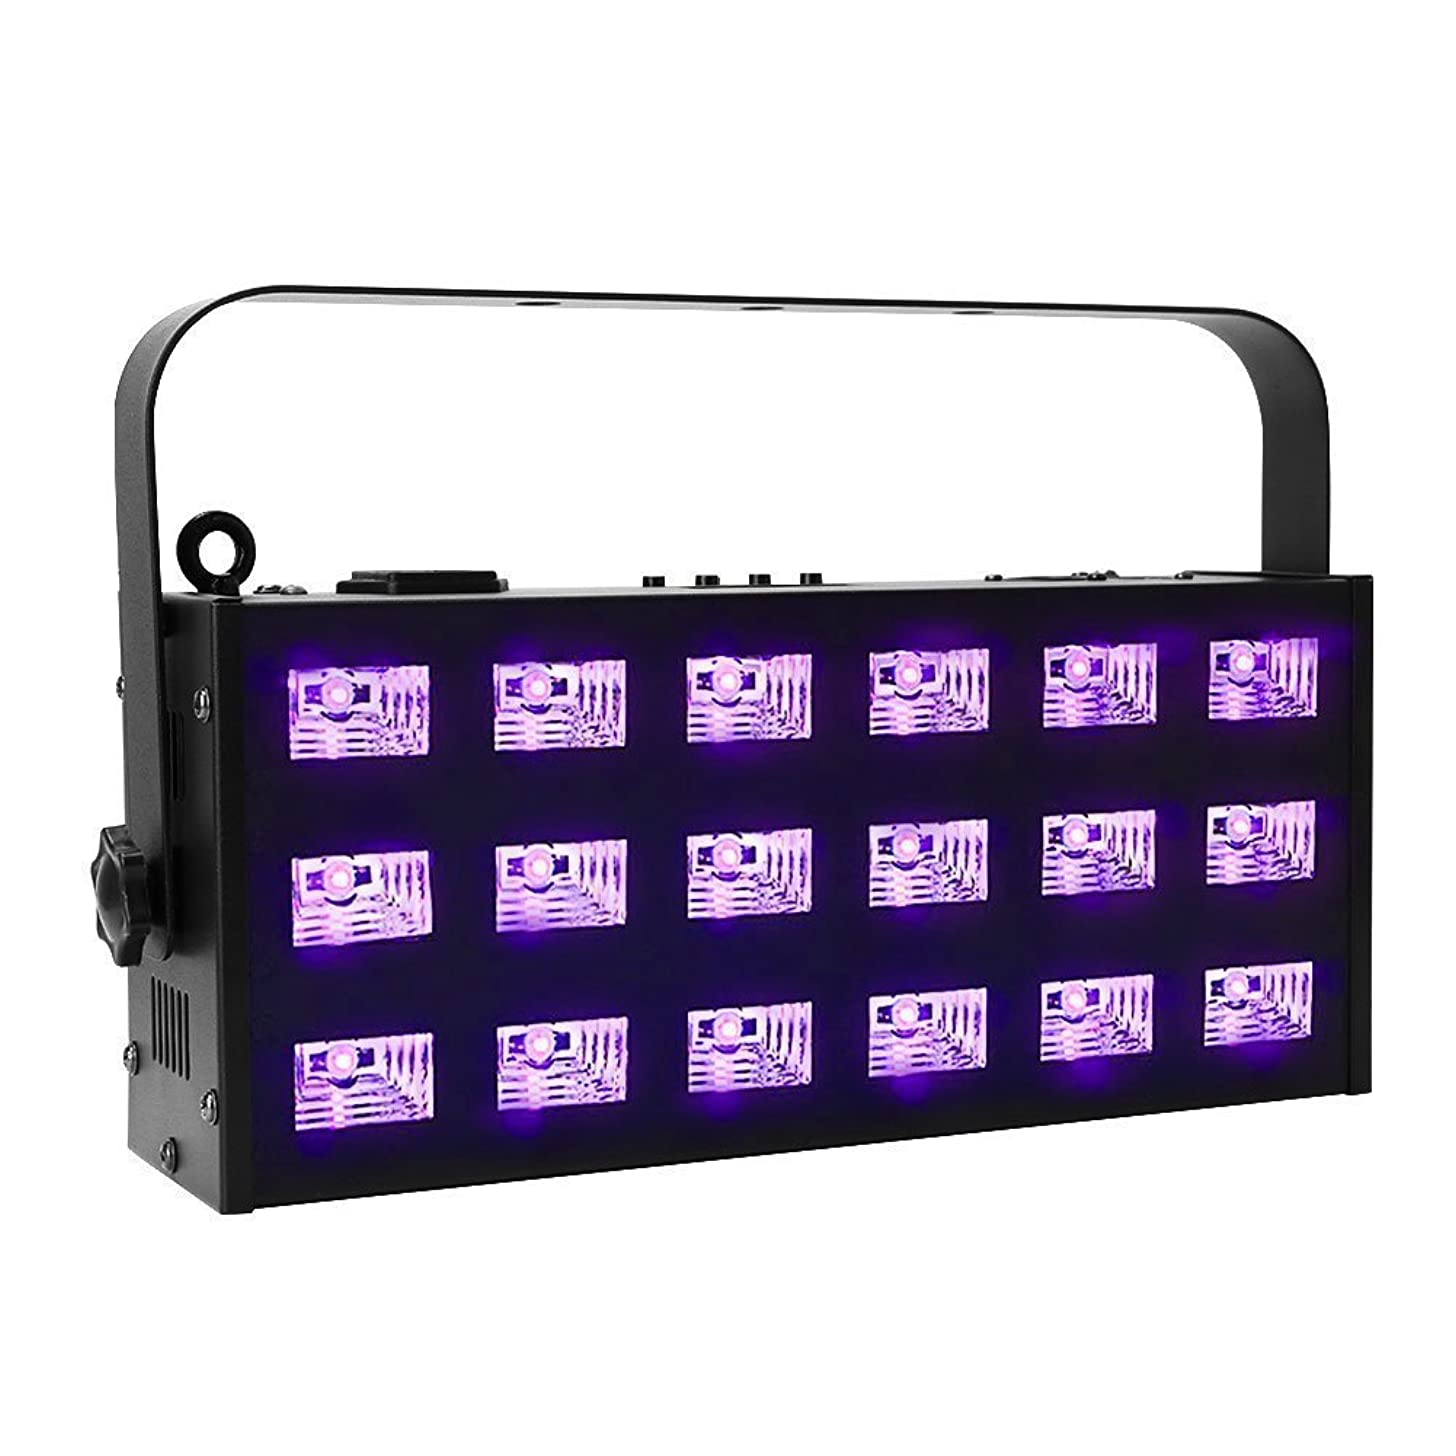 UV Black Lights, OPPSK 54W Powerful 6x3 UV LED 395-405nm 7CH DMX Control Auto Play Strobe Effects for Stage Lighting, Birthday, Wedding, UV Body Paint &Poster, 25x25ft Glow in The Dark Party Supplies